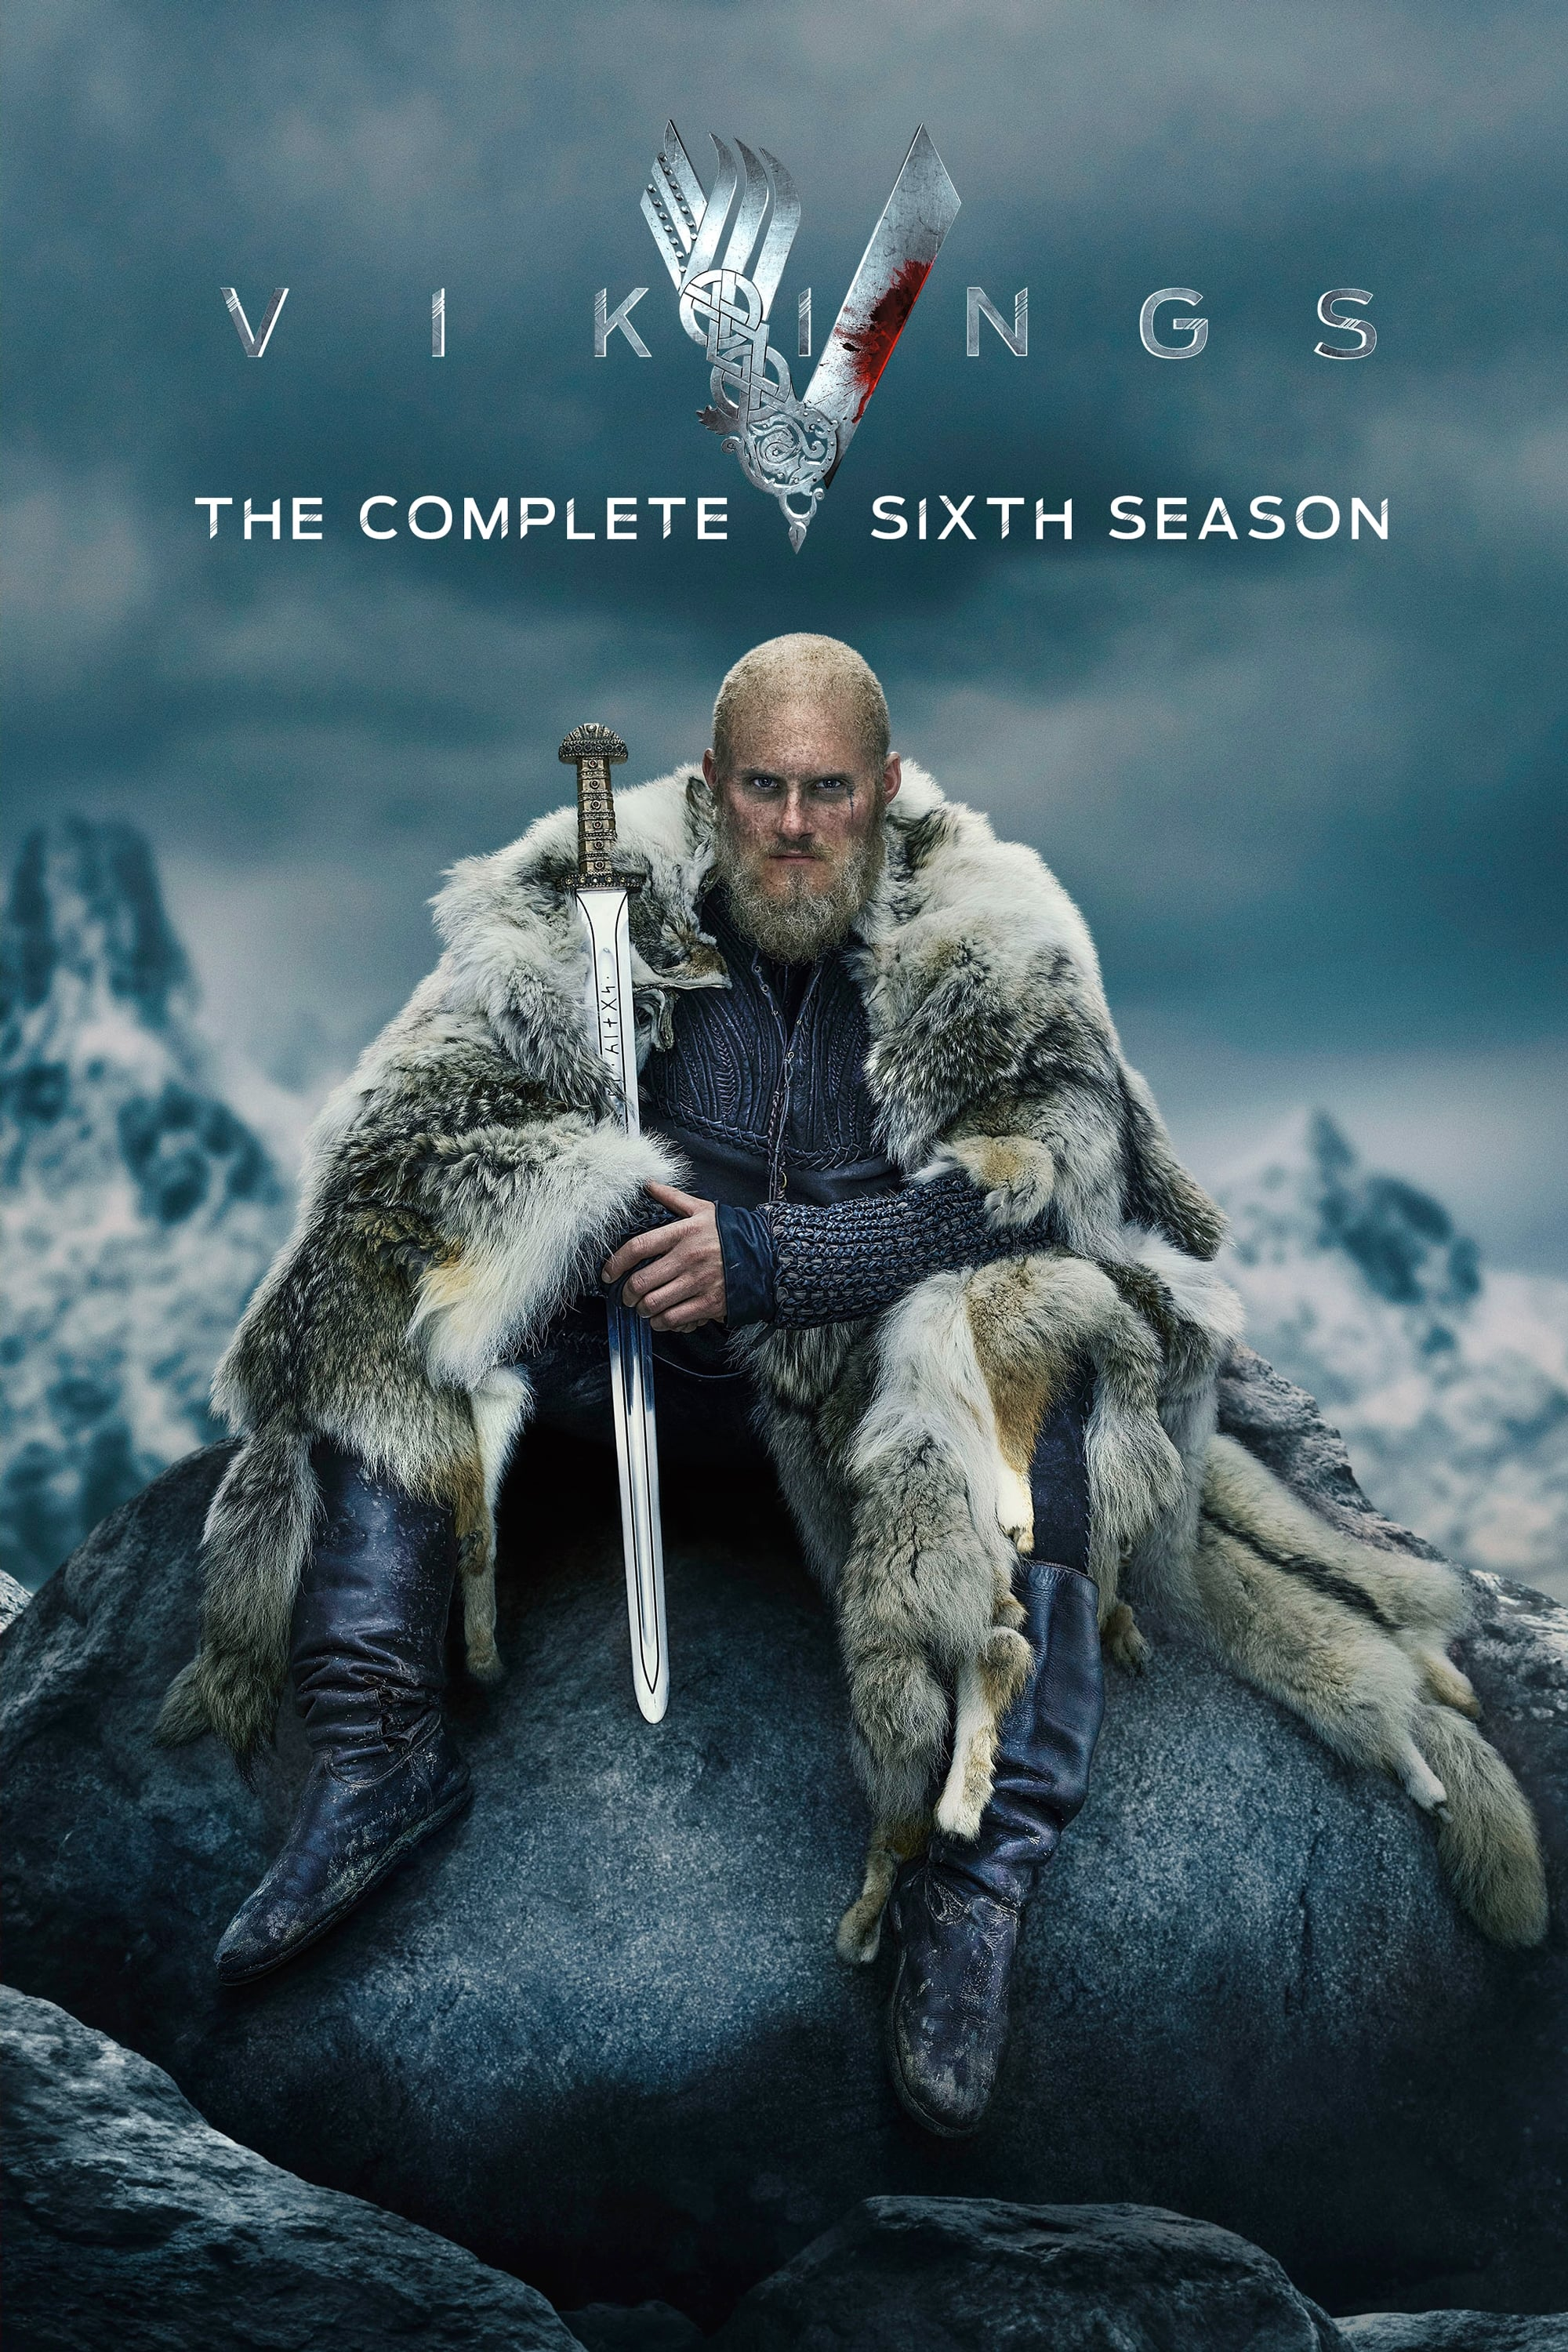 Streaming Film Org Vikings Saison Episode : streaming, vikings, saison, episode, Vikings, Series, 2013-2020), Posters, Movie, Database, (TMDb)